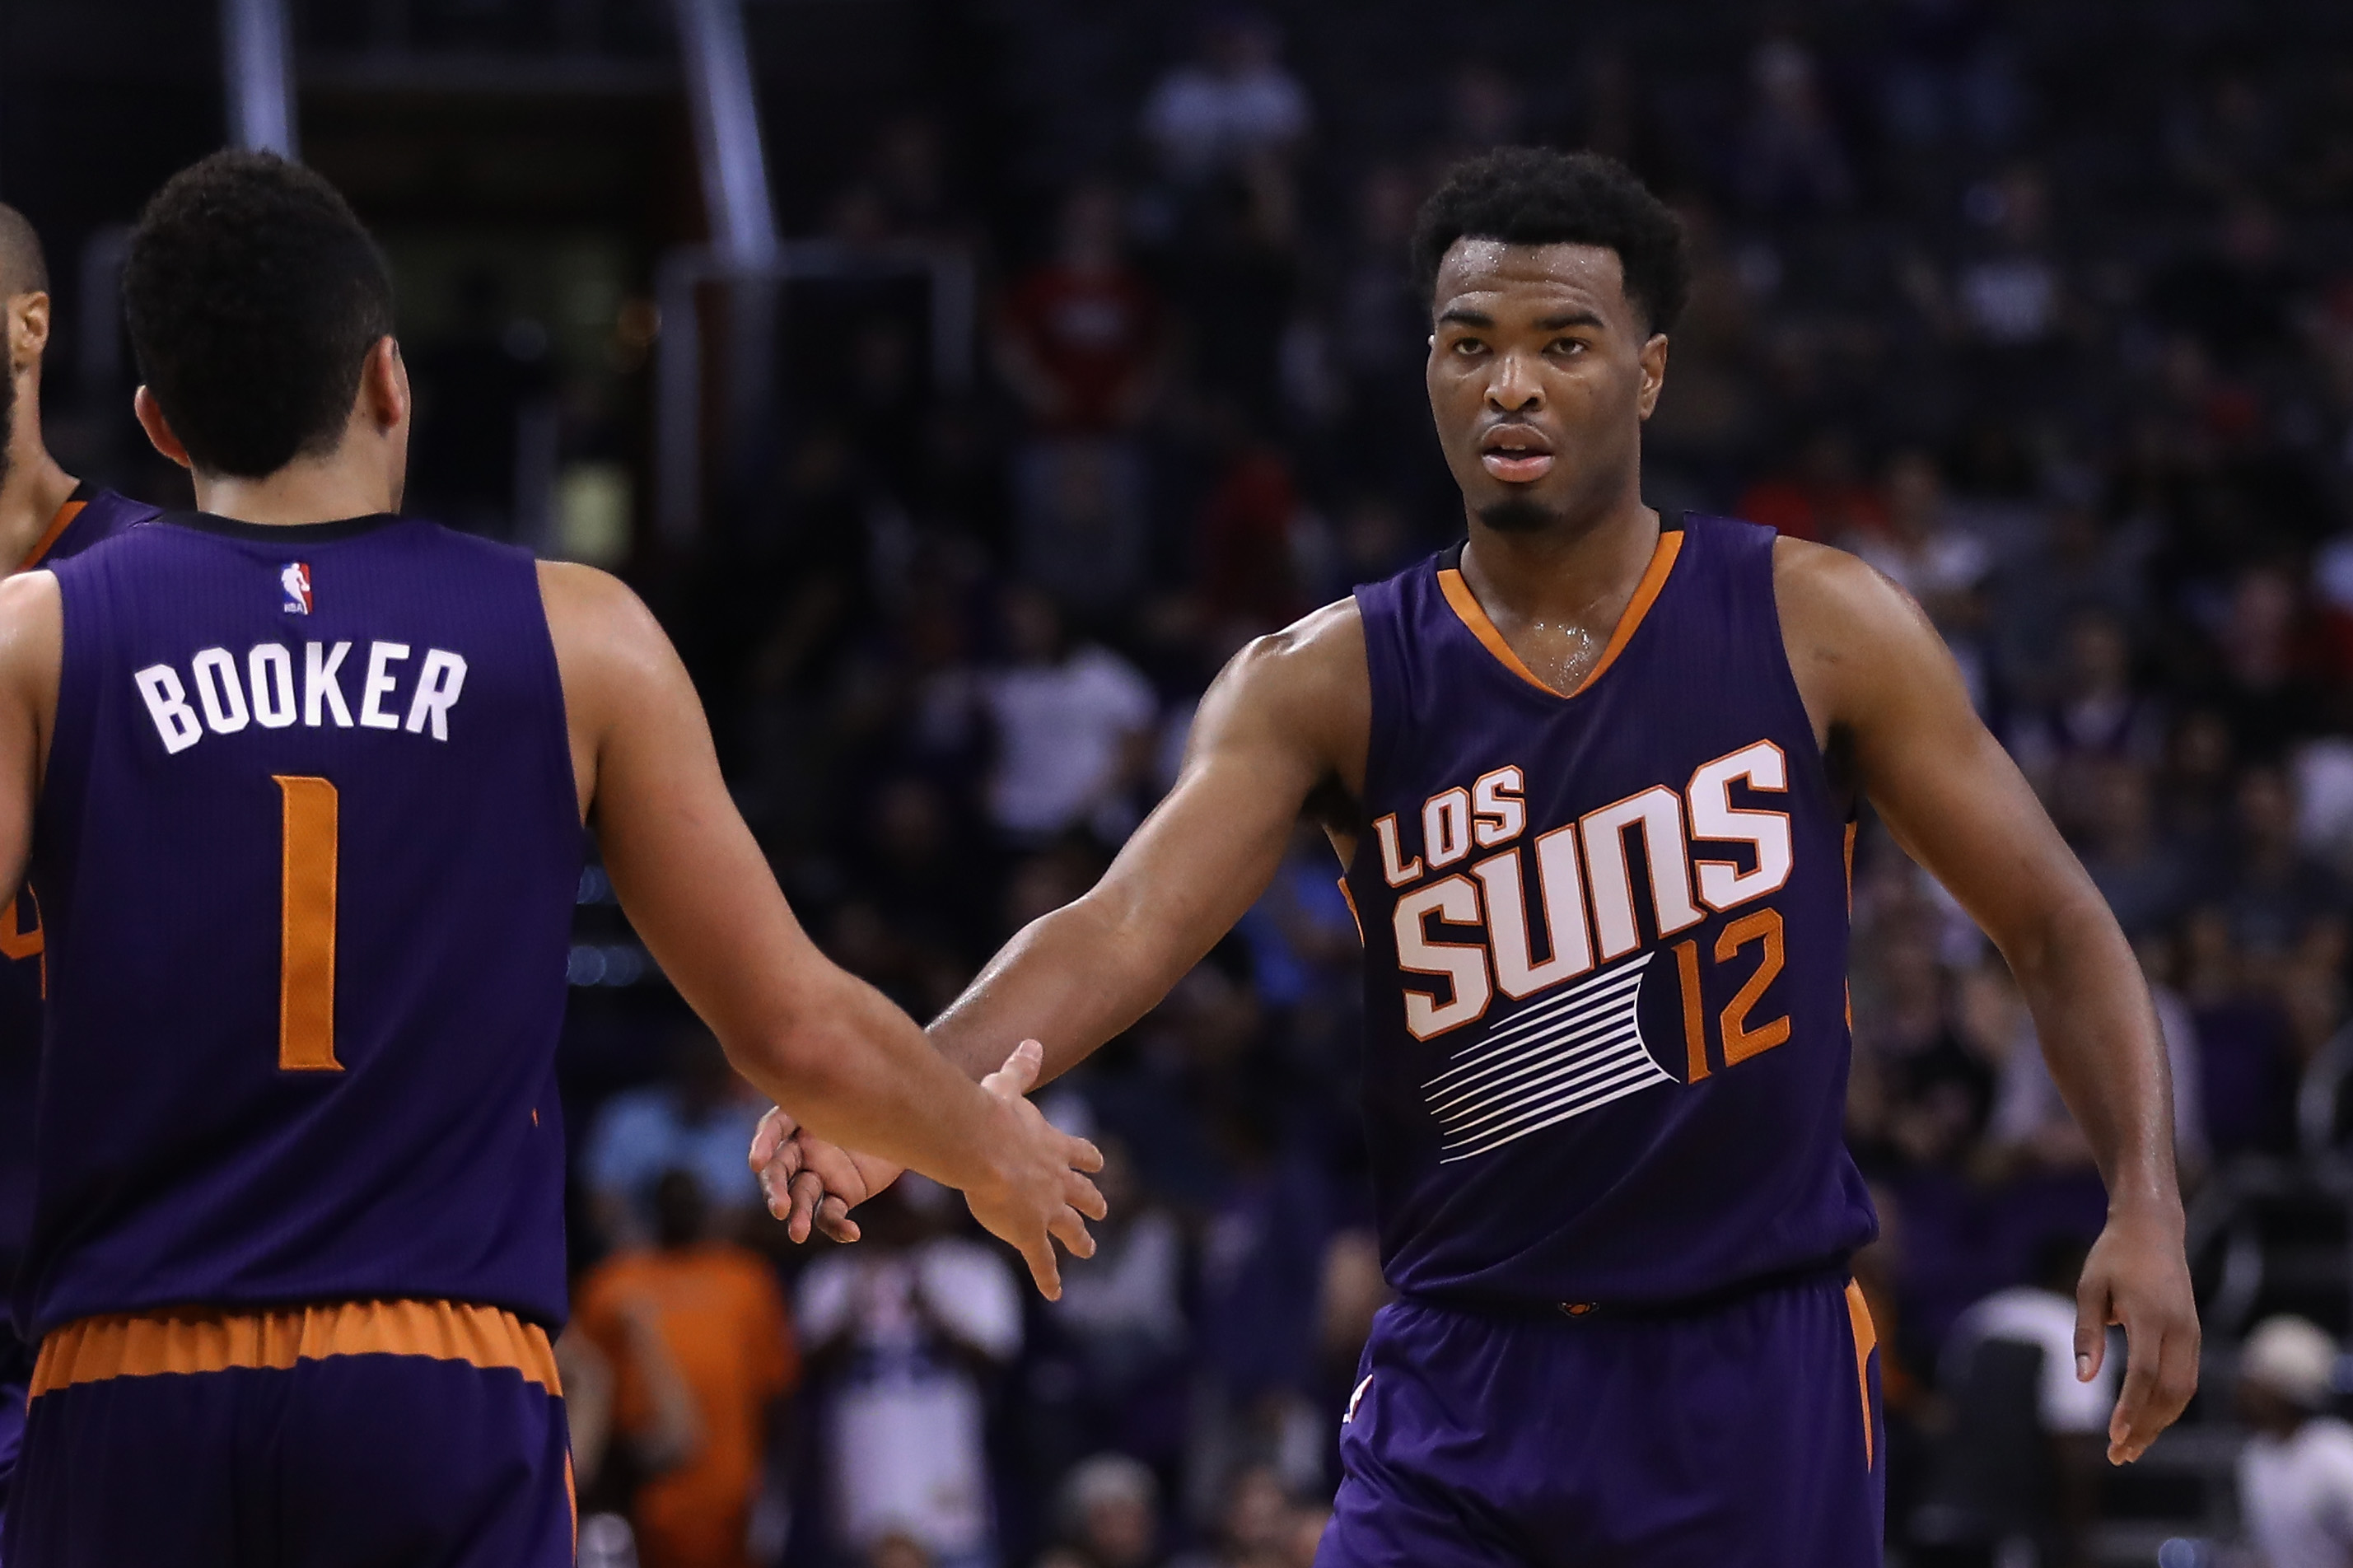 T.J. Warren's emergence has been a rare bright spot for the struggling Suns